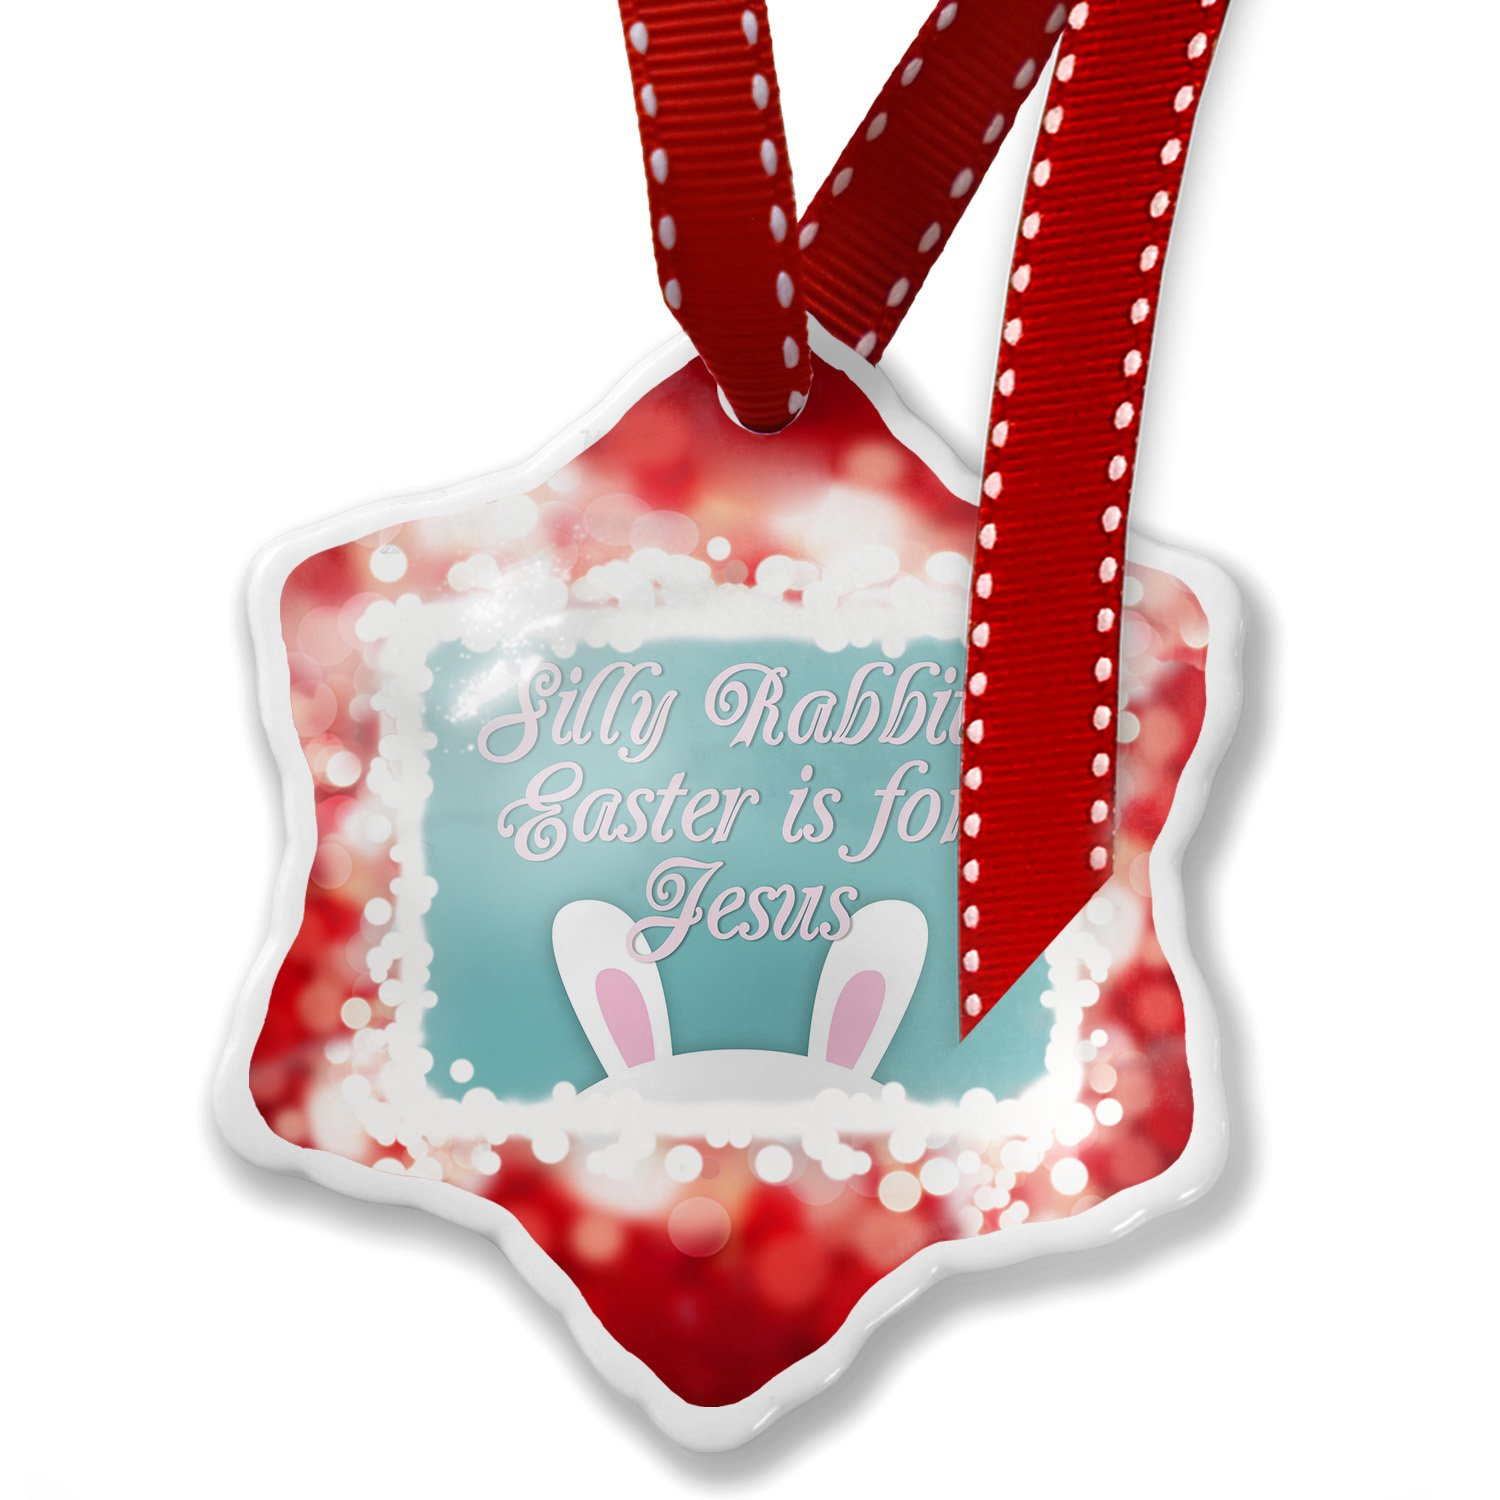 Amazon.com: Christmas Ornament Silly Rabbit, Easter is for Jesus ...